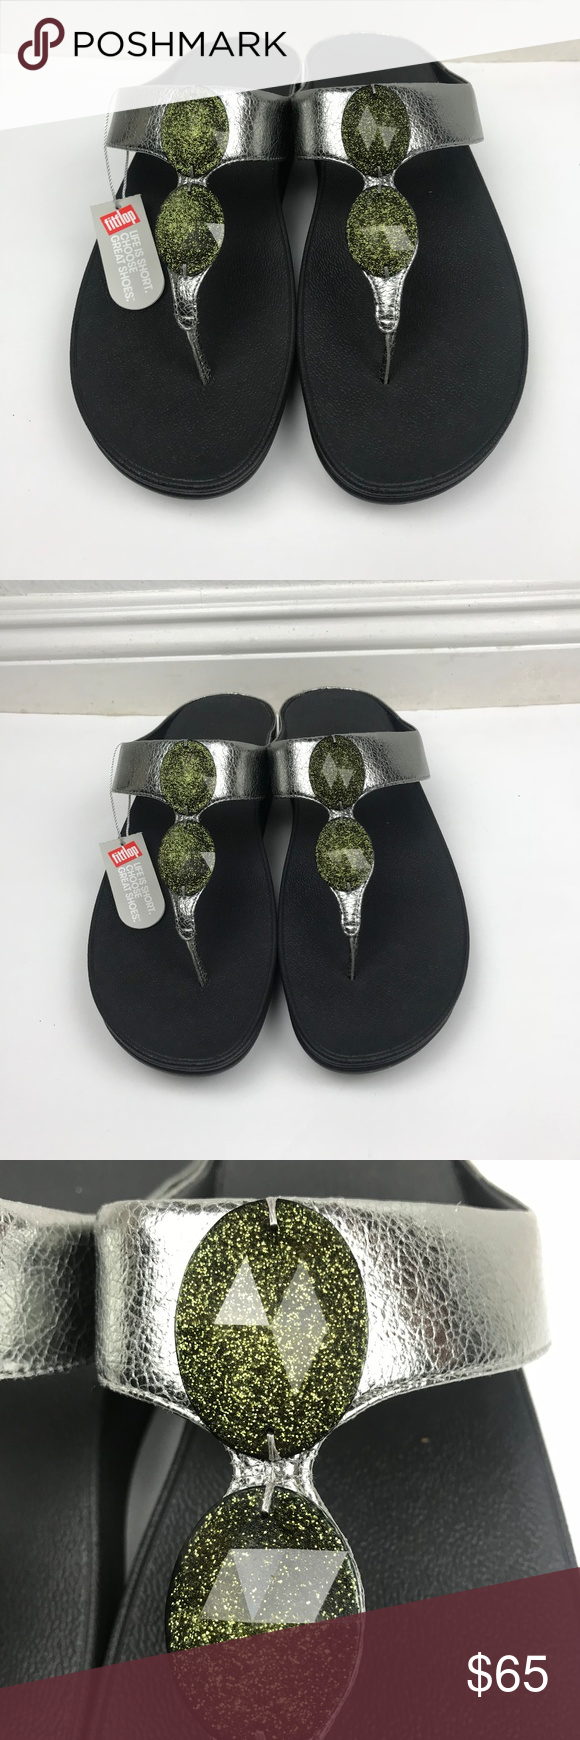 76c50d4f733498 FitFlop Pierra Pewter Toe Post Silver Sandals Brand  FitFlop Pierra Pewter  Toe Post Silver Beaded Thong Sandals Sz 11 NWT Size  11 Rubber Sole  Condition  ...